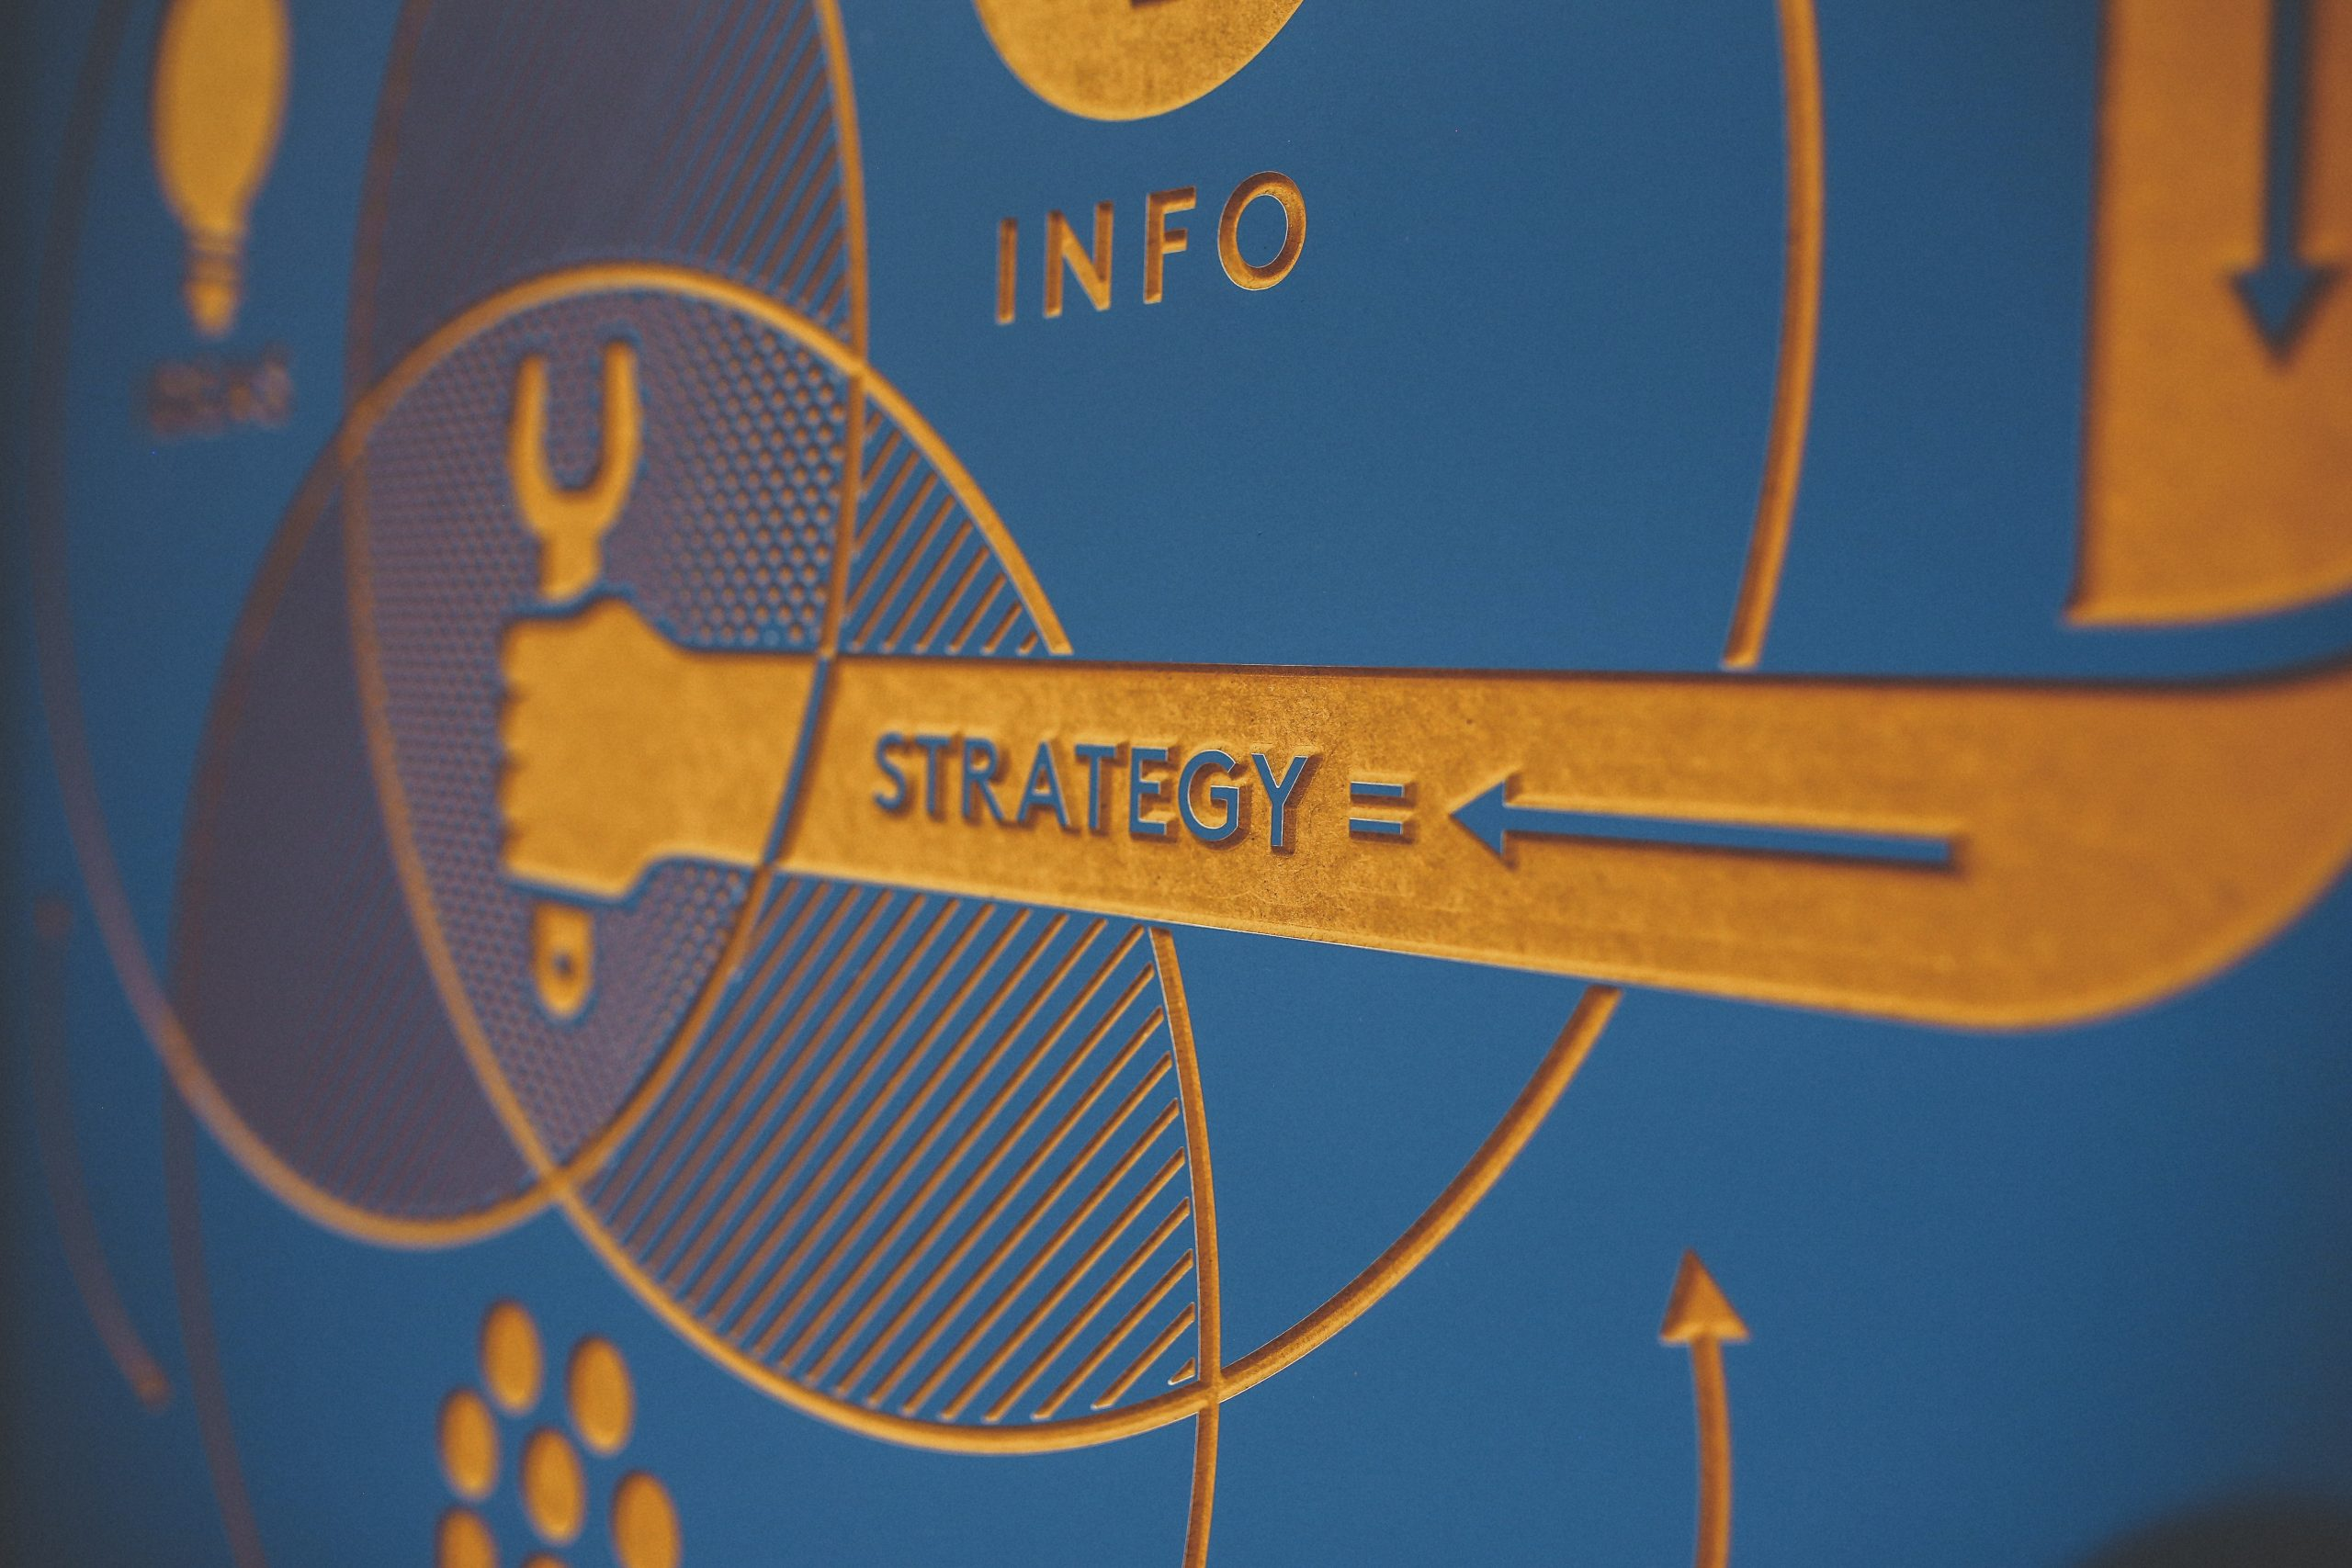 Online assessments in strategy consultancy – McKinsey's PSG